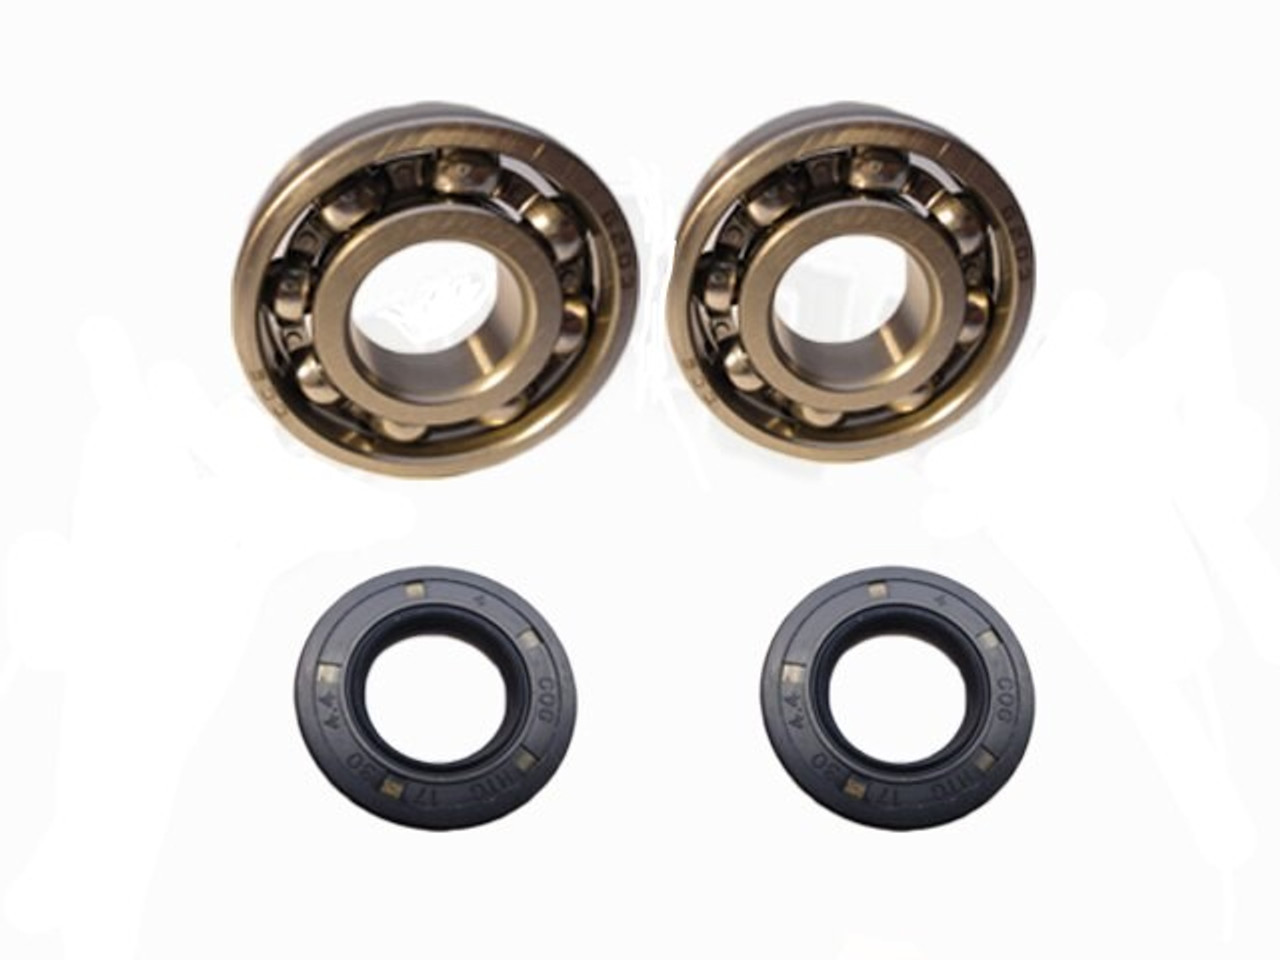 Crankshaft Grooved Ball Bearing For Stihl MS290 MS390 MS310 390 029 039 Chainsaw